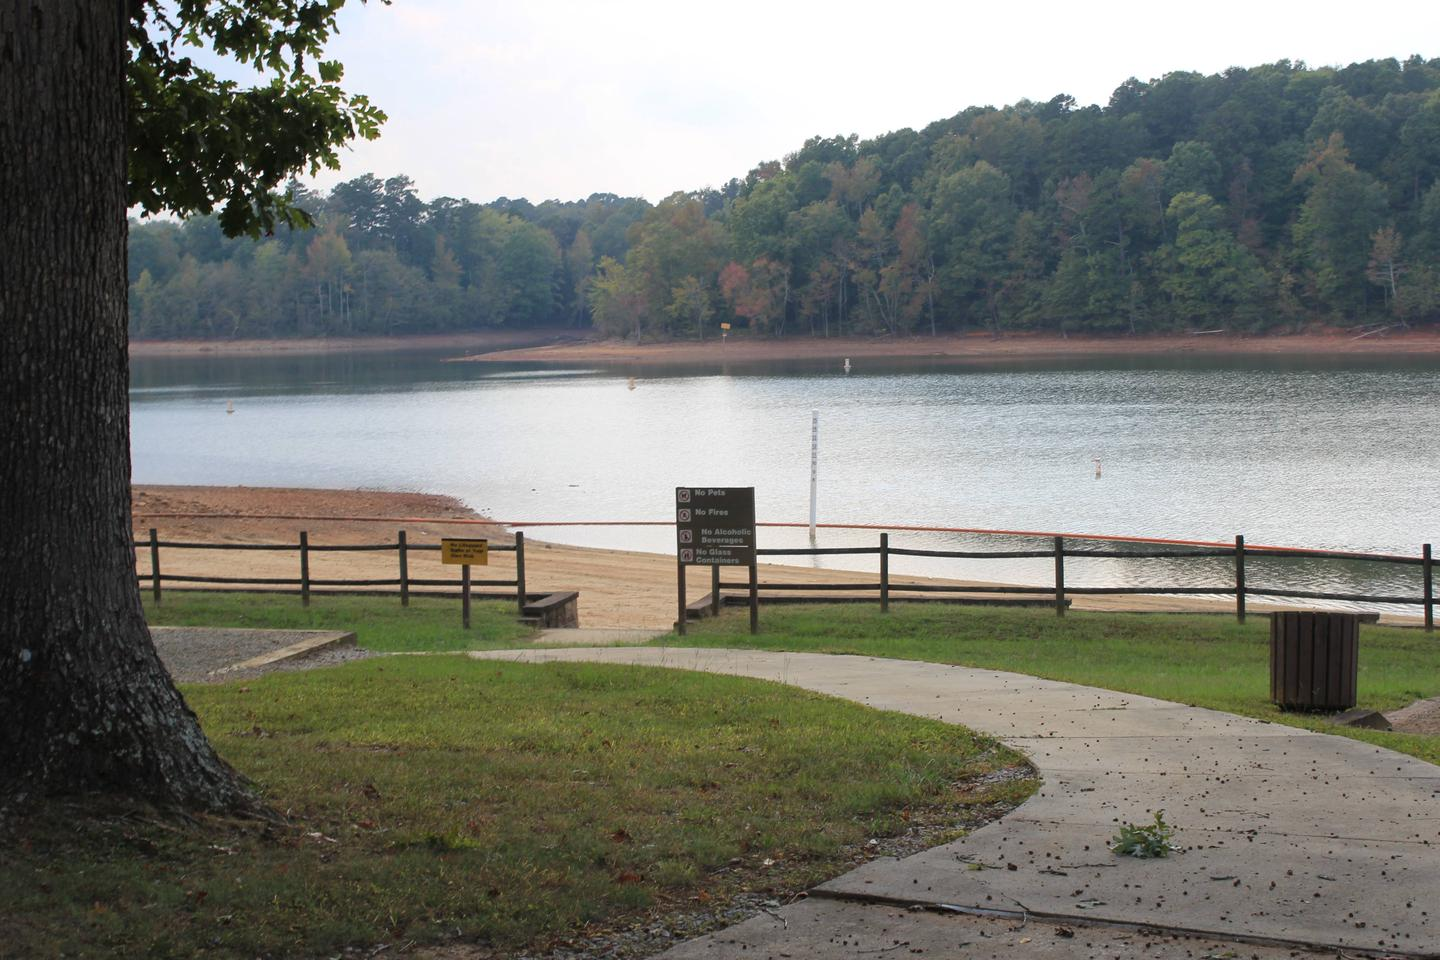 Rudd's Creek Day Use AreaWelcome to Rudd's Creek Day Use Area! The Day Use Area is located across the street from the Rudd's Creek Campground. This picture is of the swimming area located in the Day Use Area. Remember to ALWAYS WEAR A LIFEJACKET!